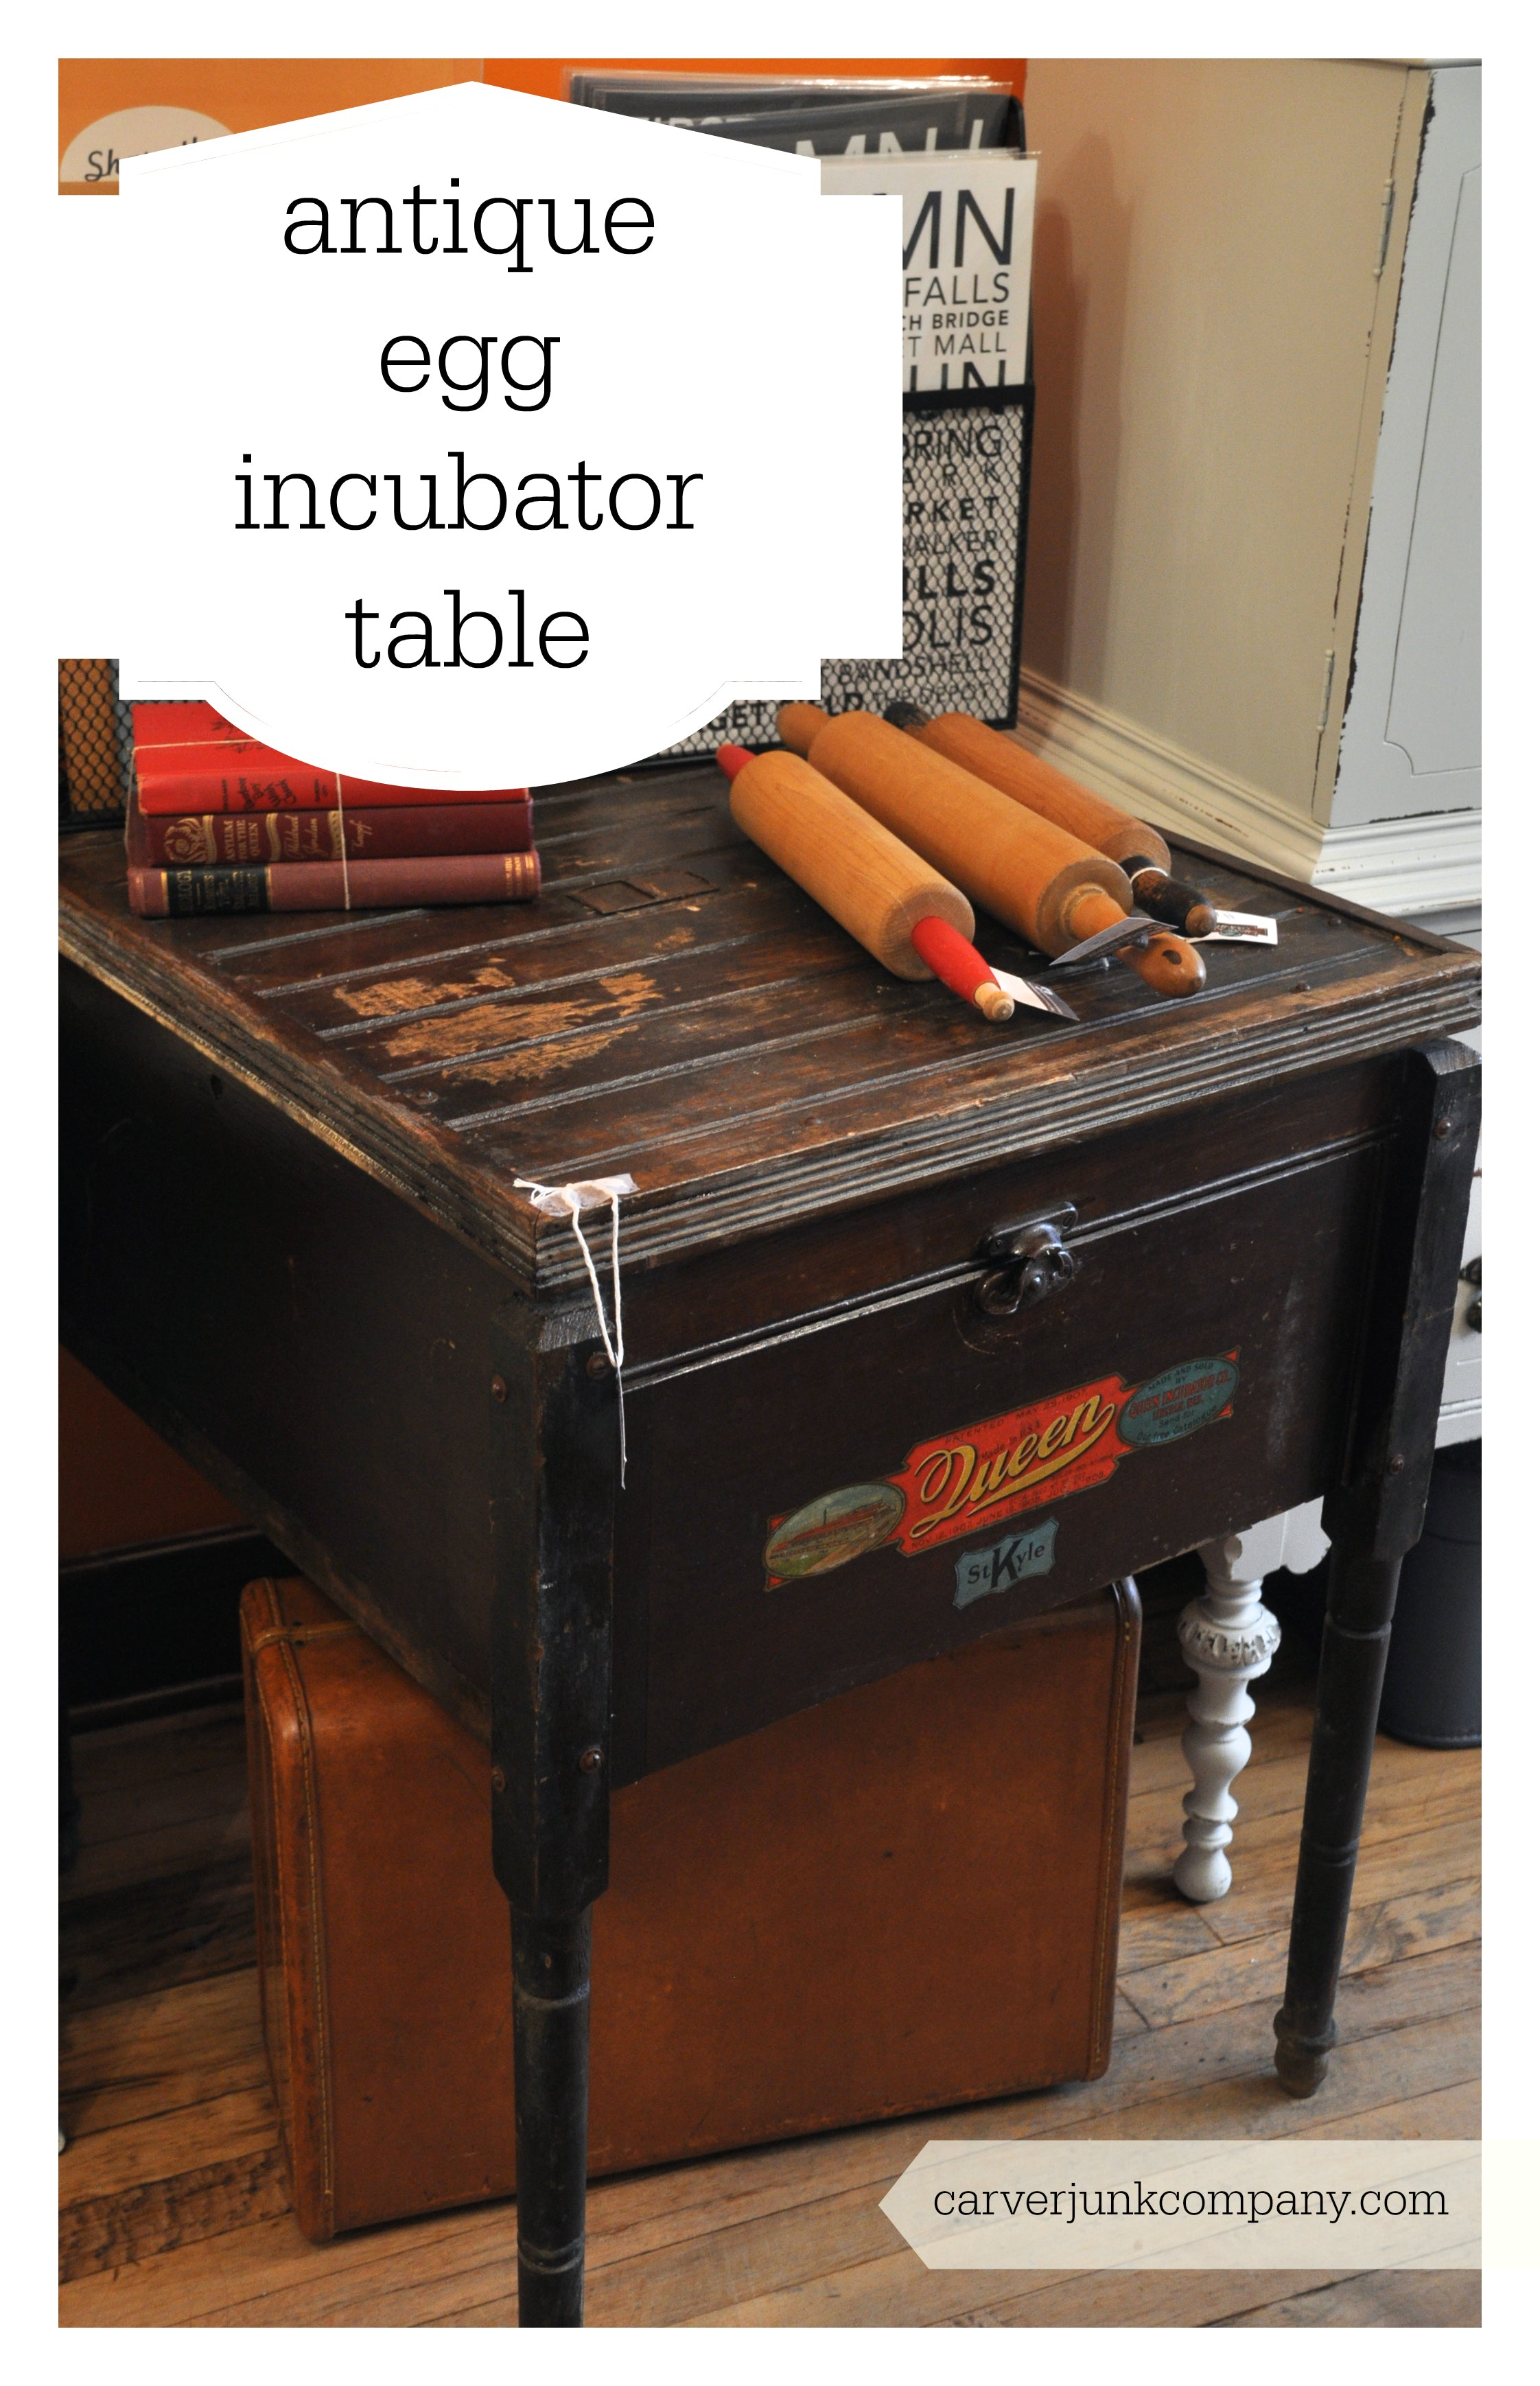 Antique Egg Incubator turned into a Table | Original Primitive | Carver Junk Company